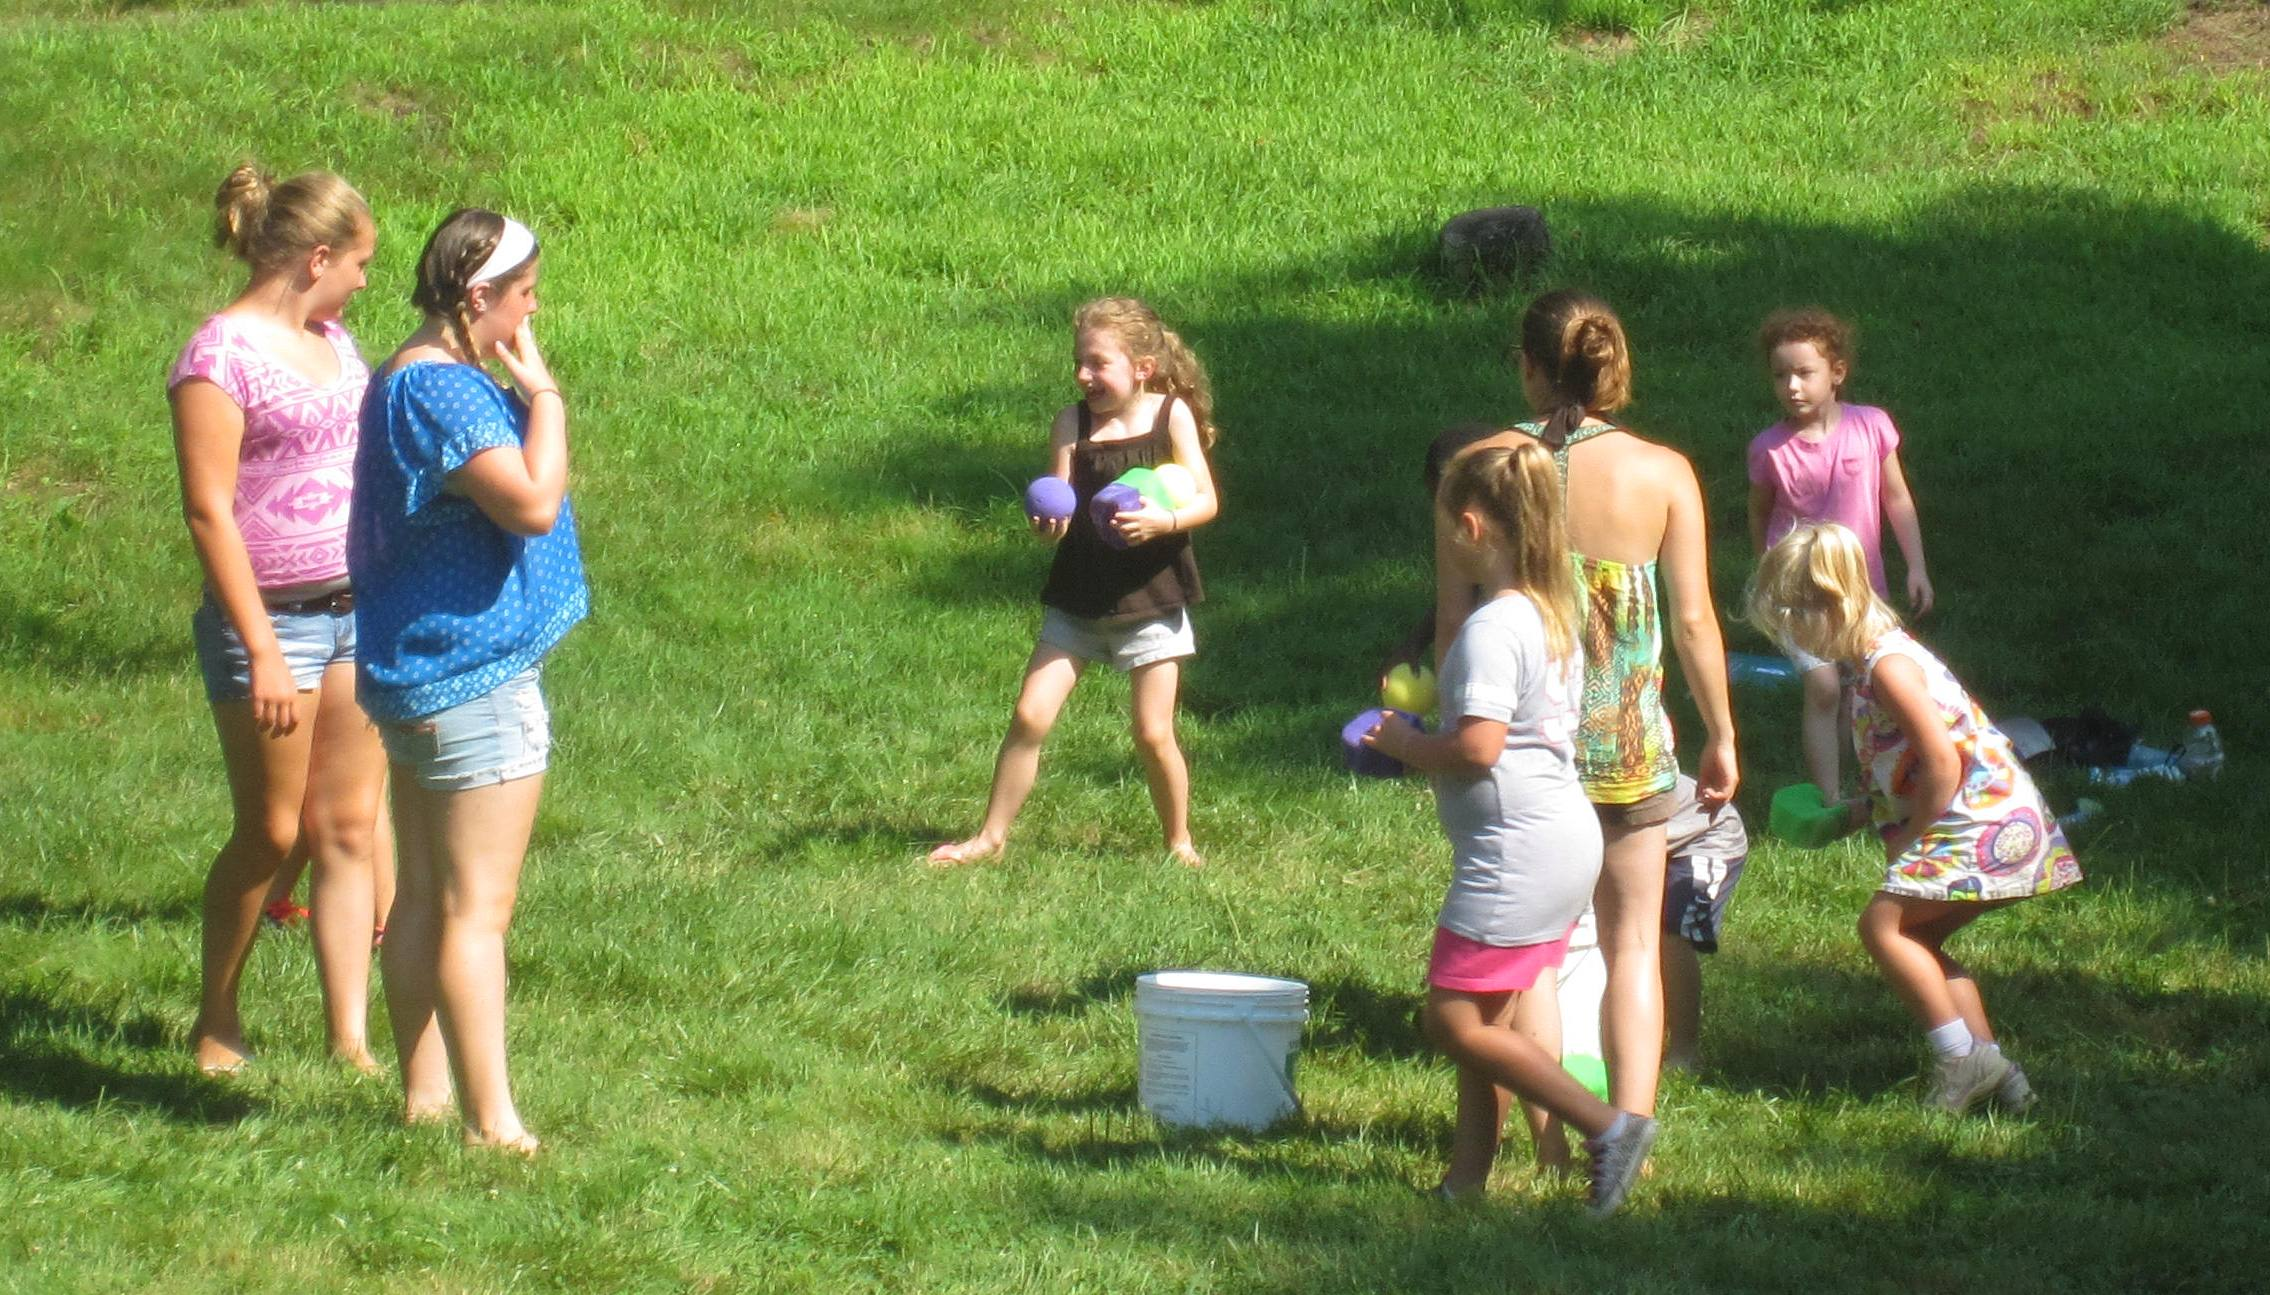 Summer Fun July 17 2013 017.jpg